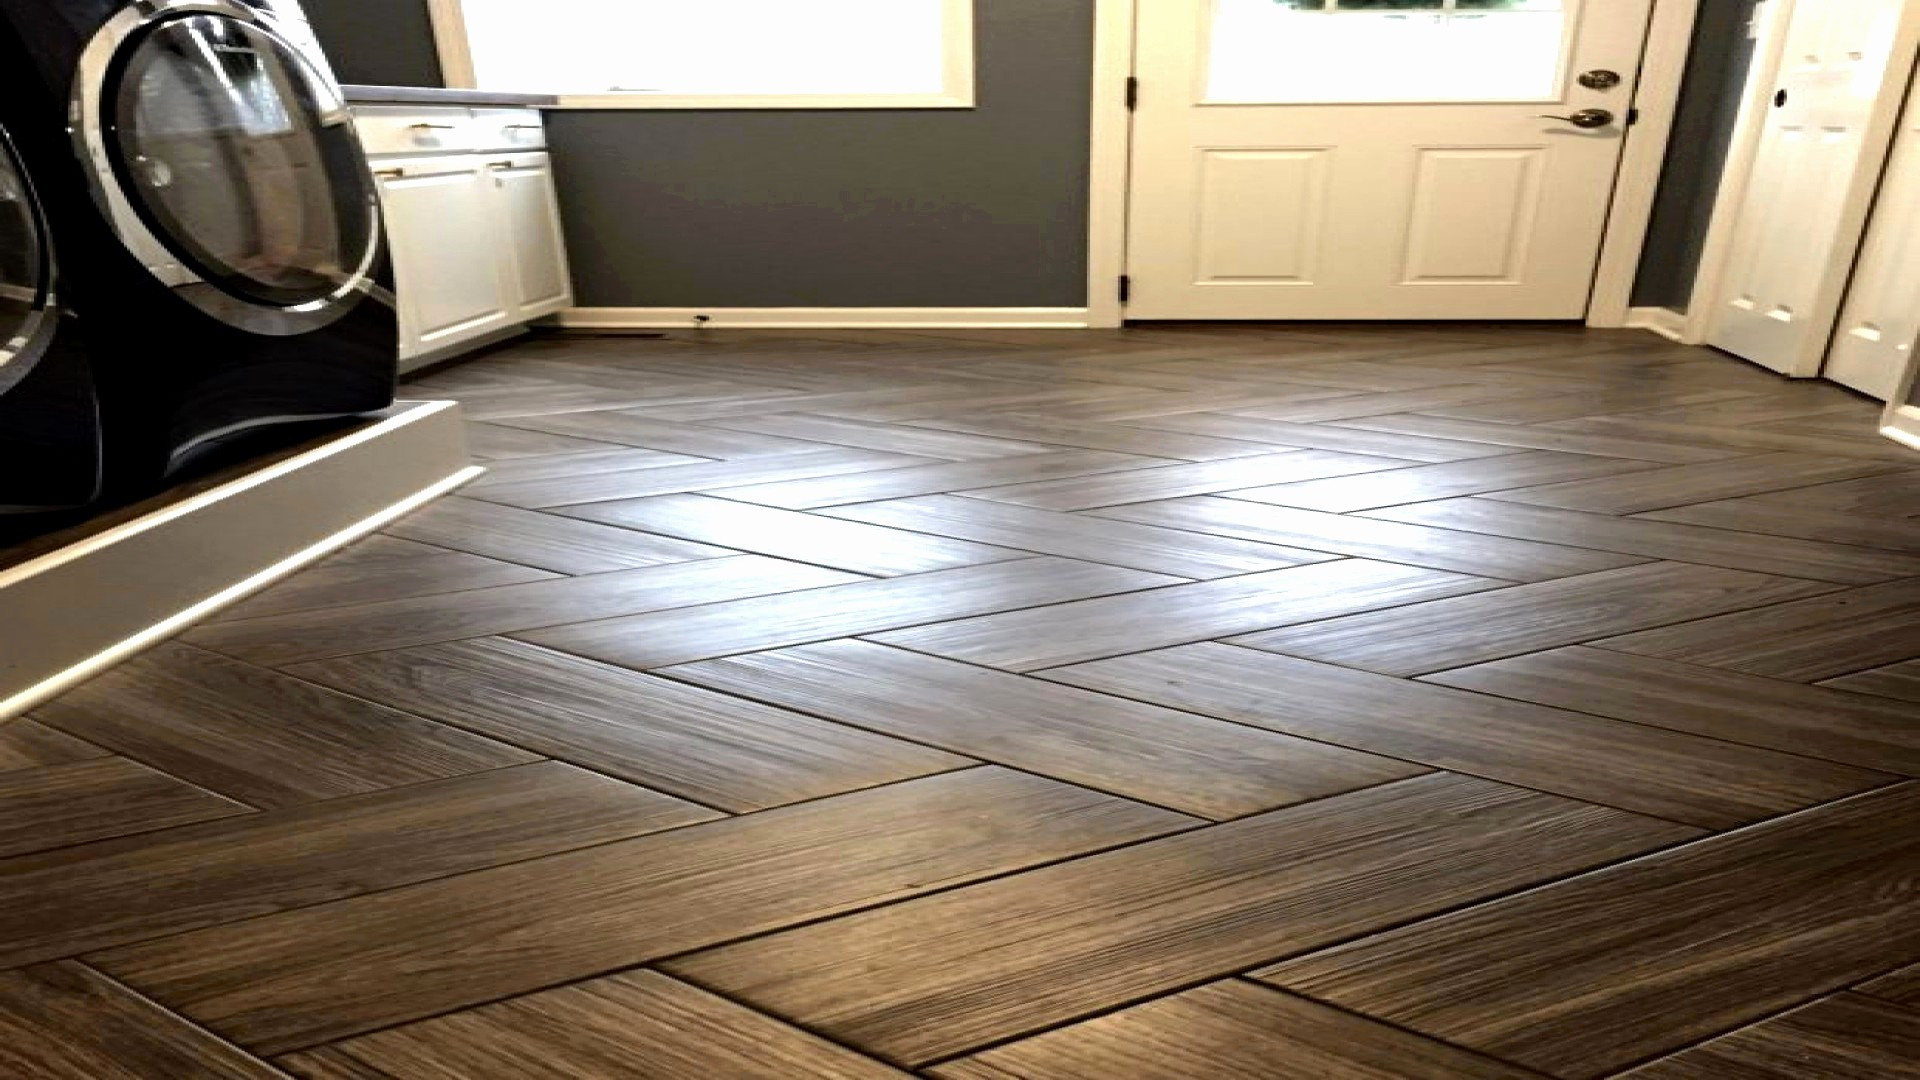 Click Hardwood Flooring Vs Laminate Of 19 Awesome Hardwood Flooring for Sale Photograph Dizpos Com Inside Hardwood Flooring for Sale Best Of 52 Luxury Wood Flooring Sale 52 S Photograph